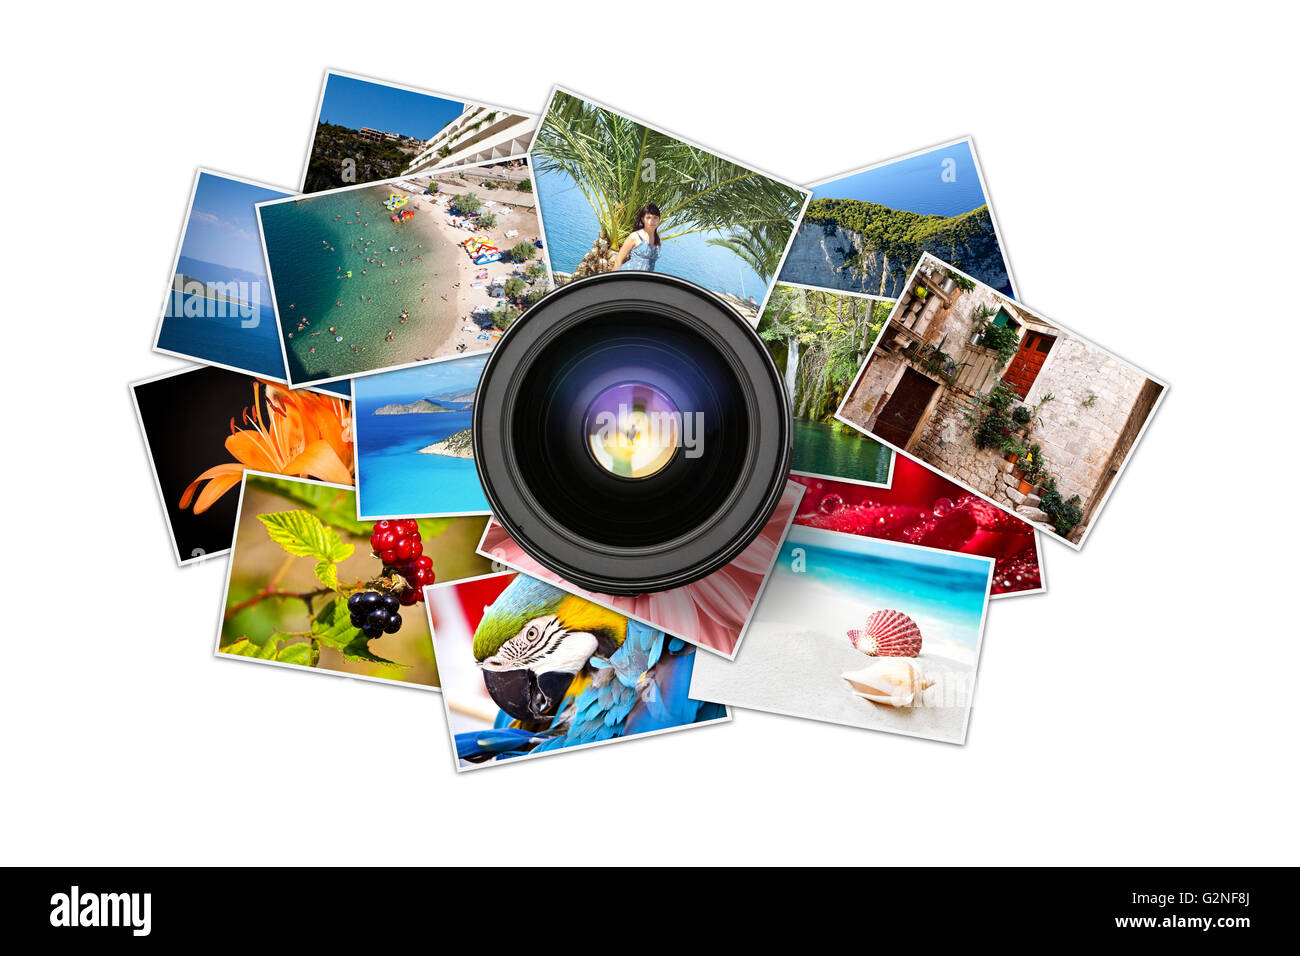 A pile of photographs with your empty space. - Stock Image